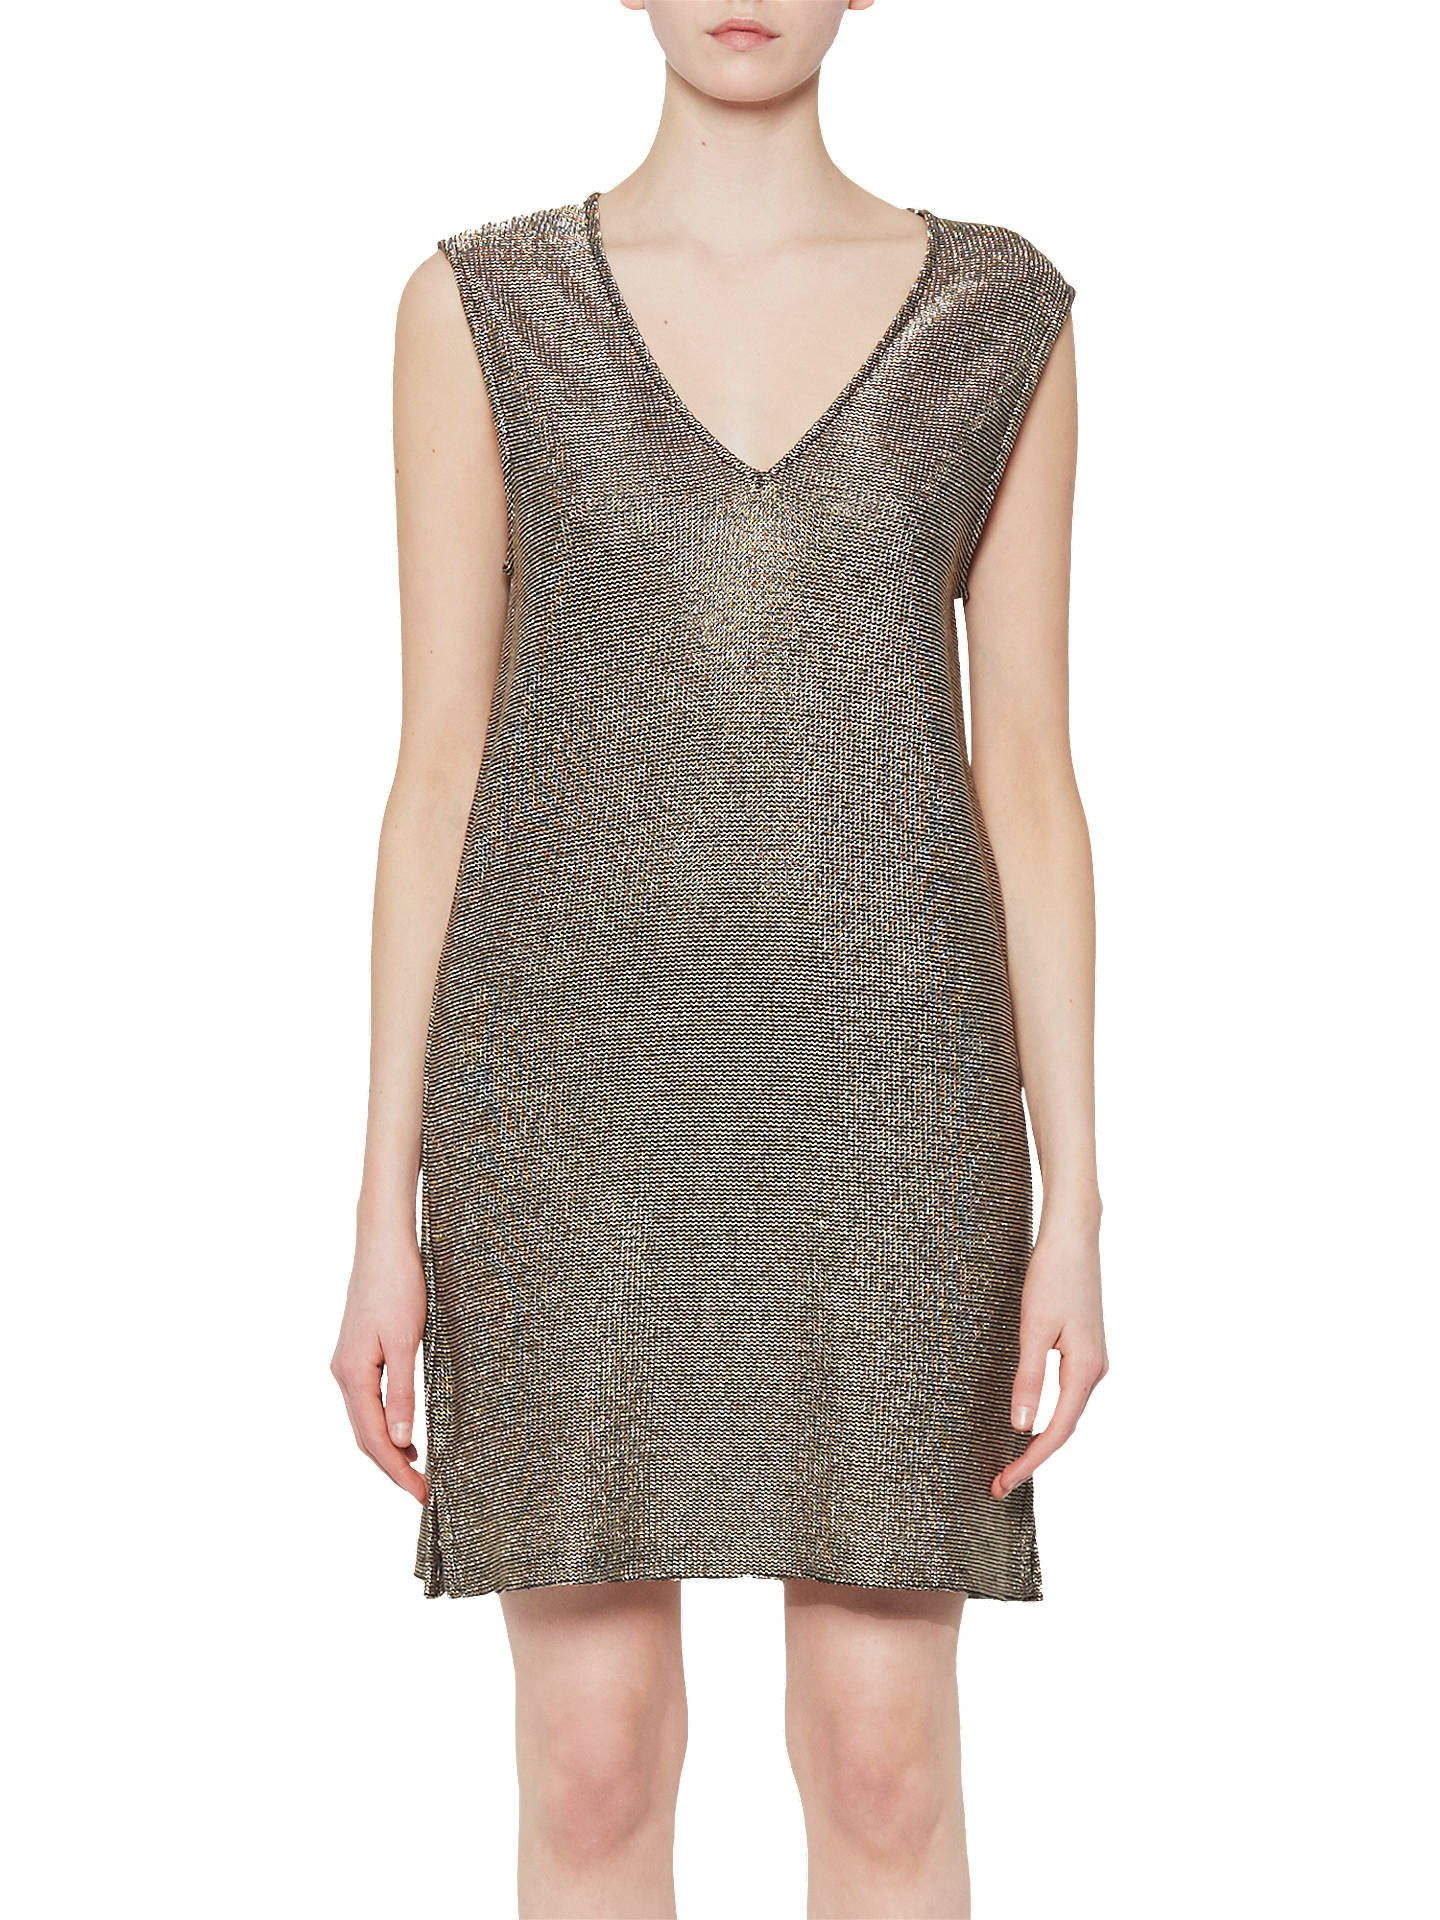 77d79a8a93d Buy French Connection Leah Metallic Jersey Tunic, Gold, 6 Online at  johnlewis.com ...